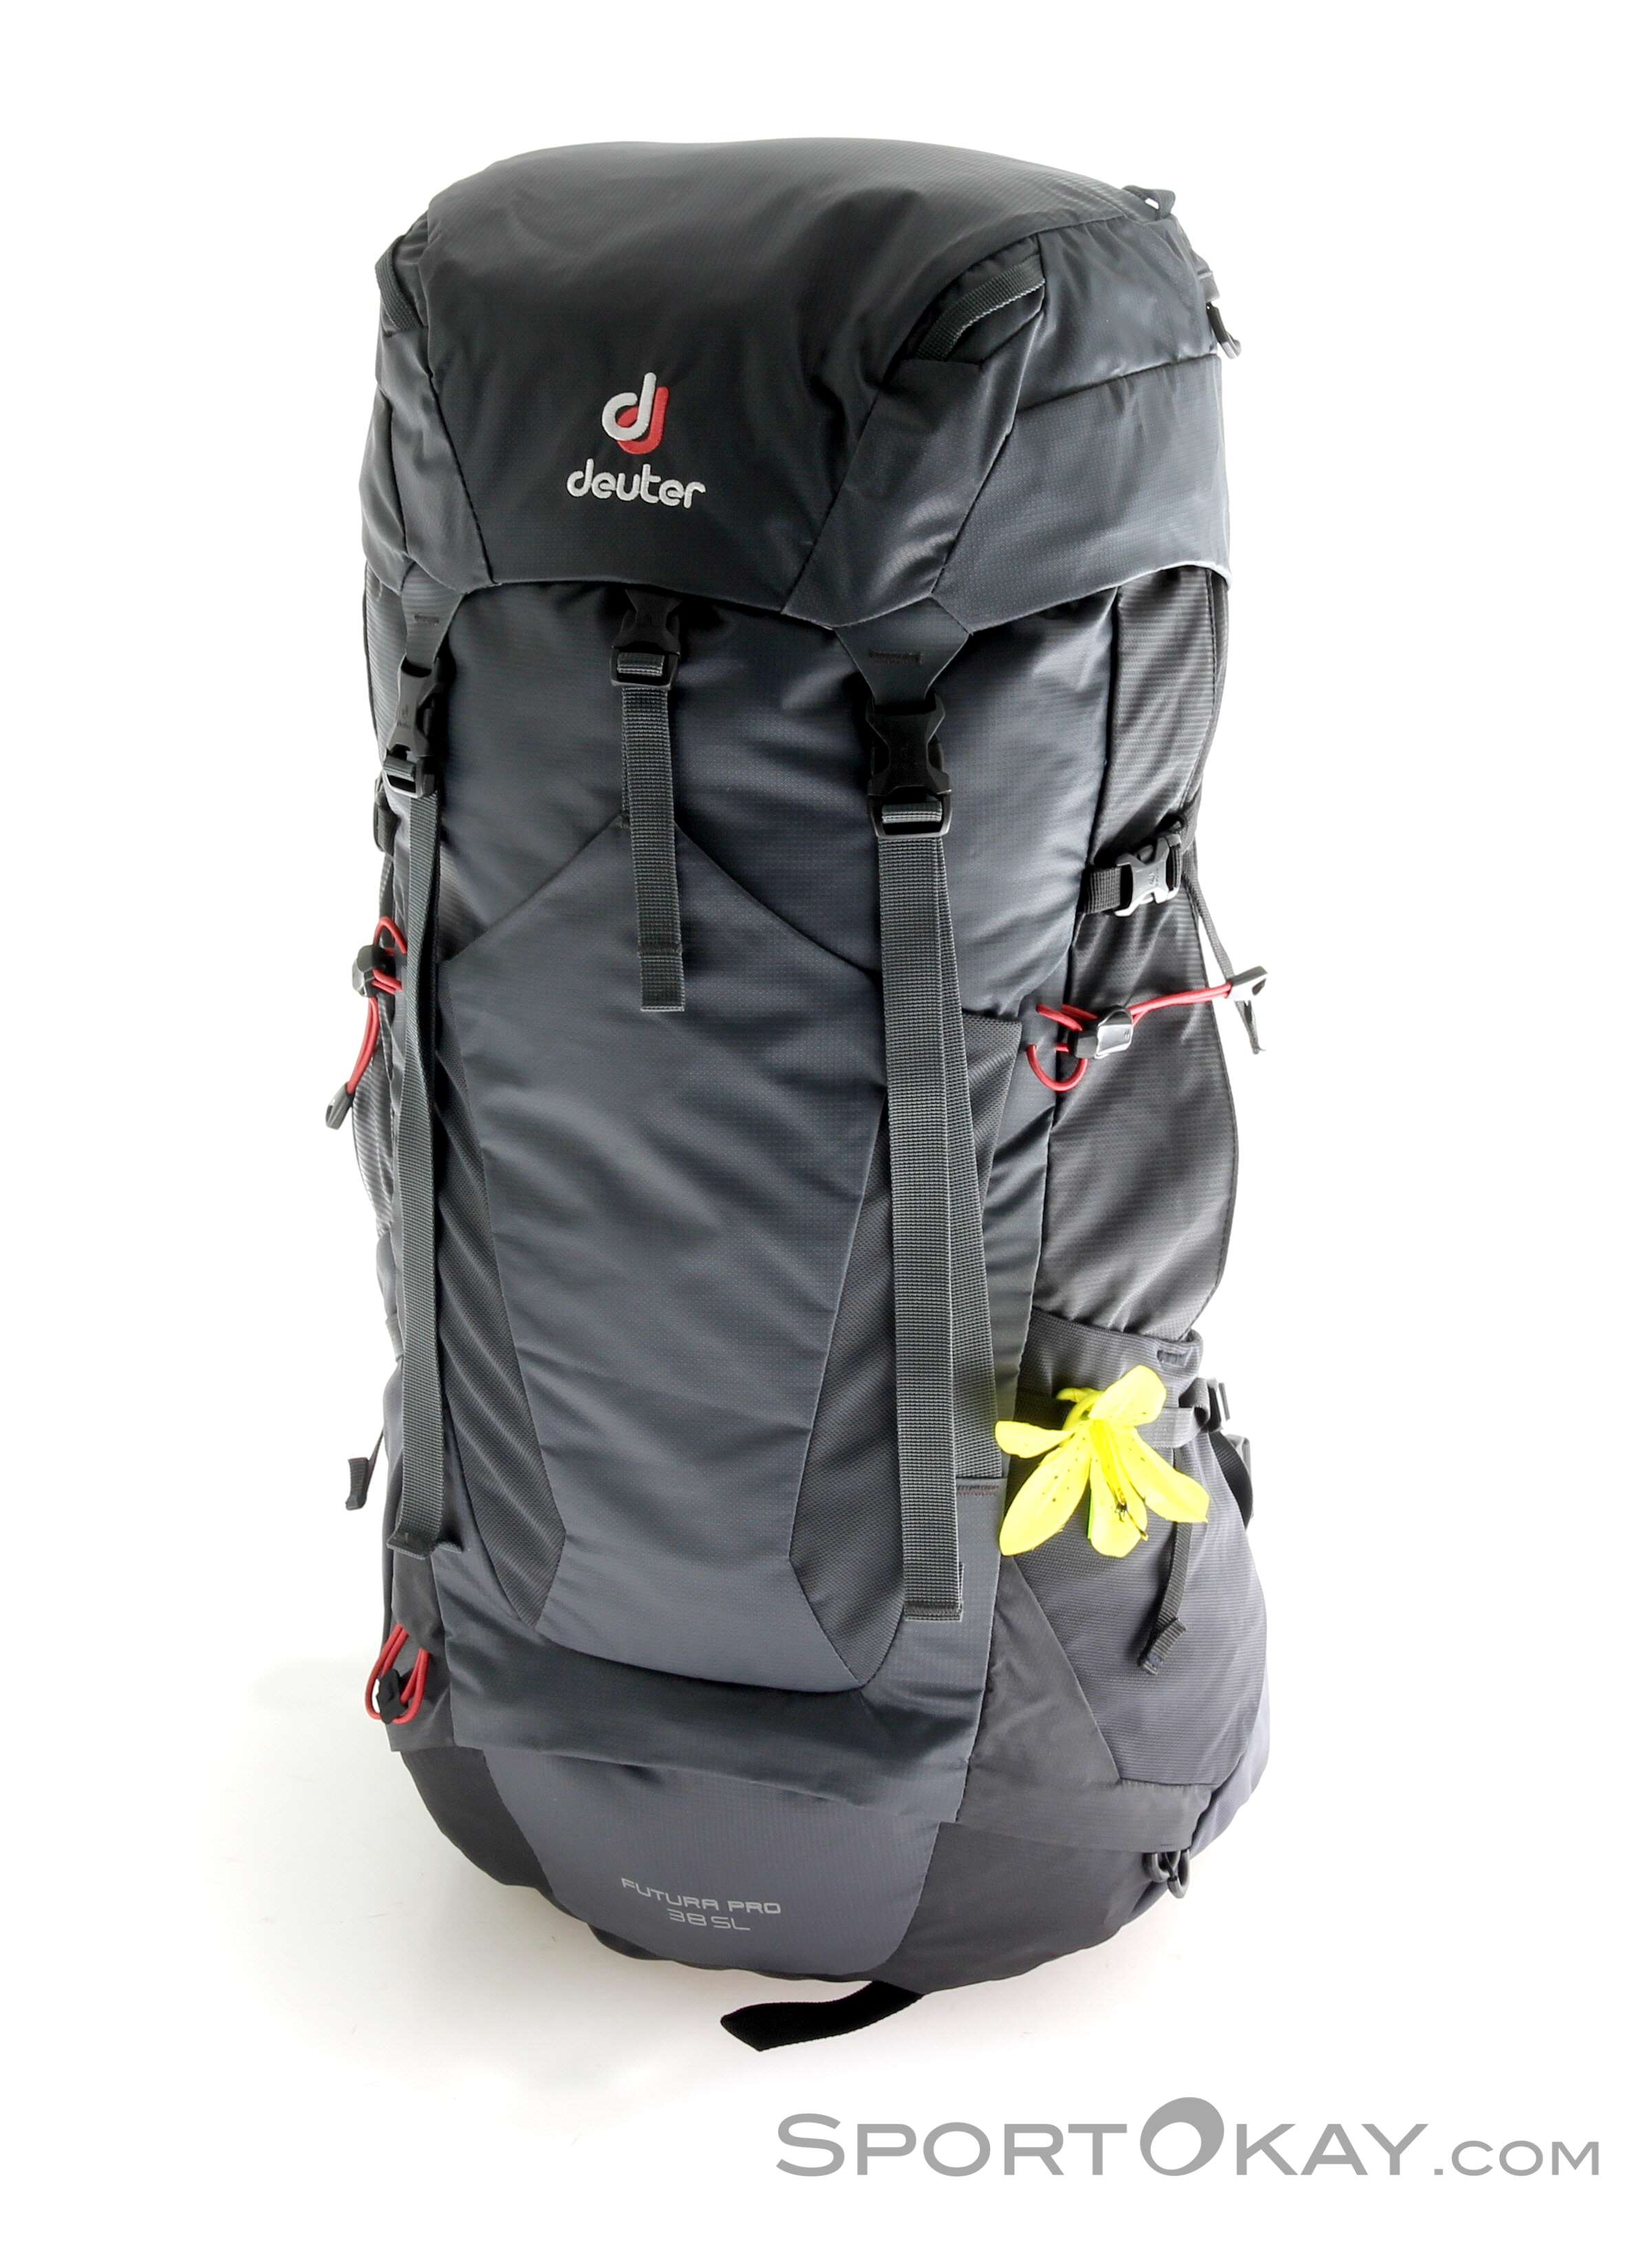 1508cca6 Deuter Futura Pro 38l SL Womens Backpack, Deuter, Black, , Female, 0078